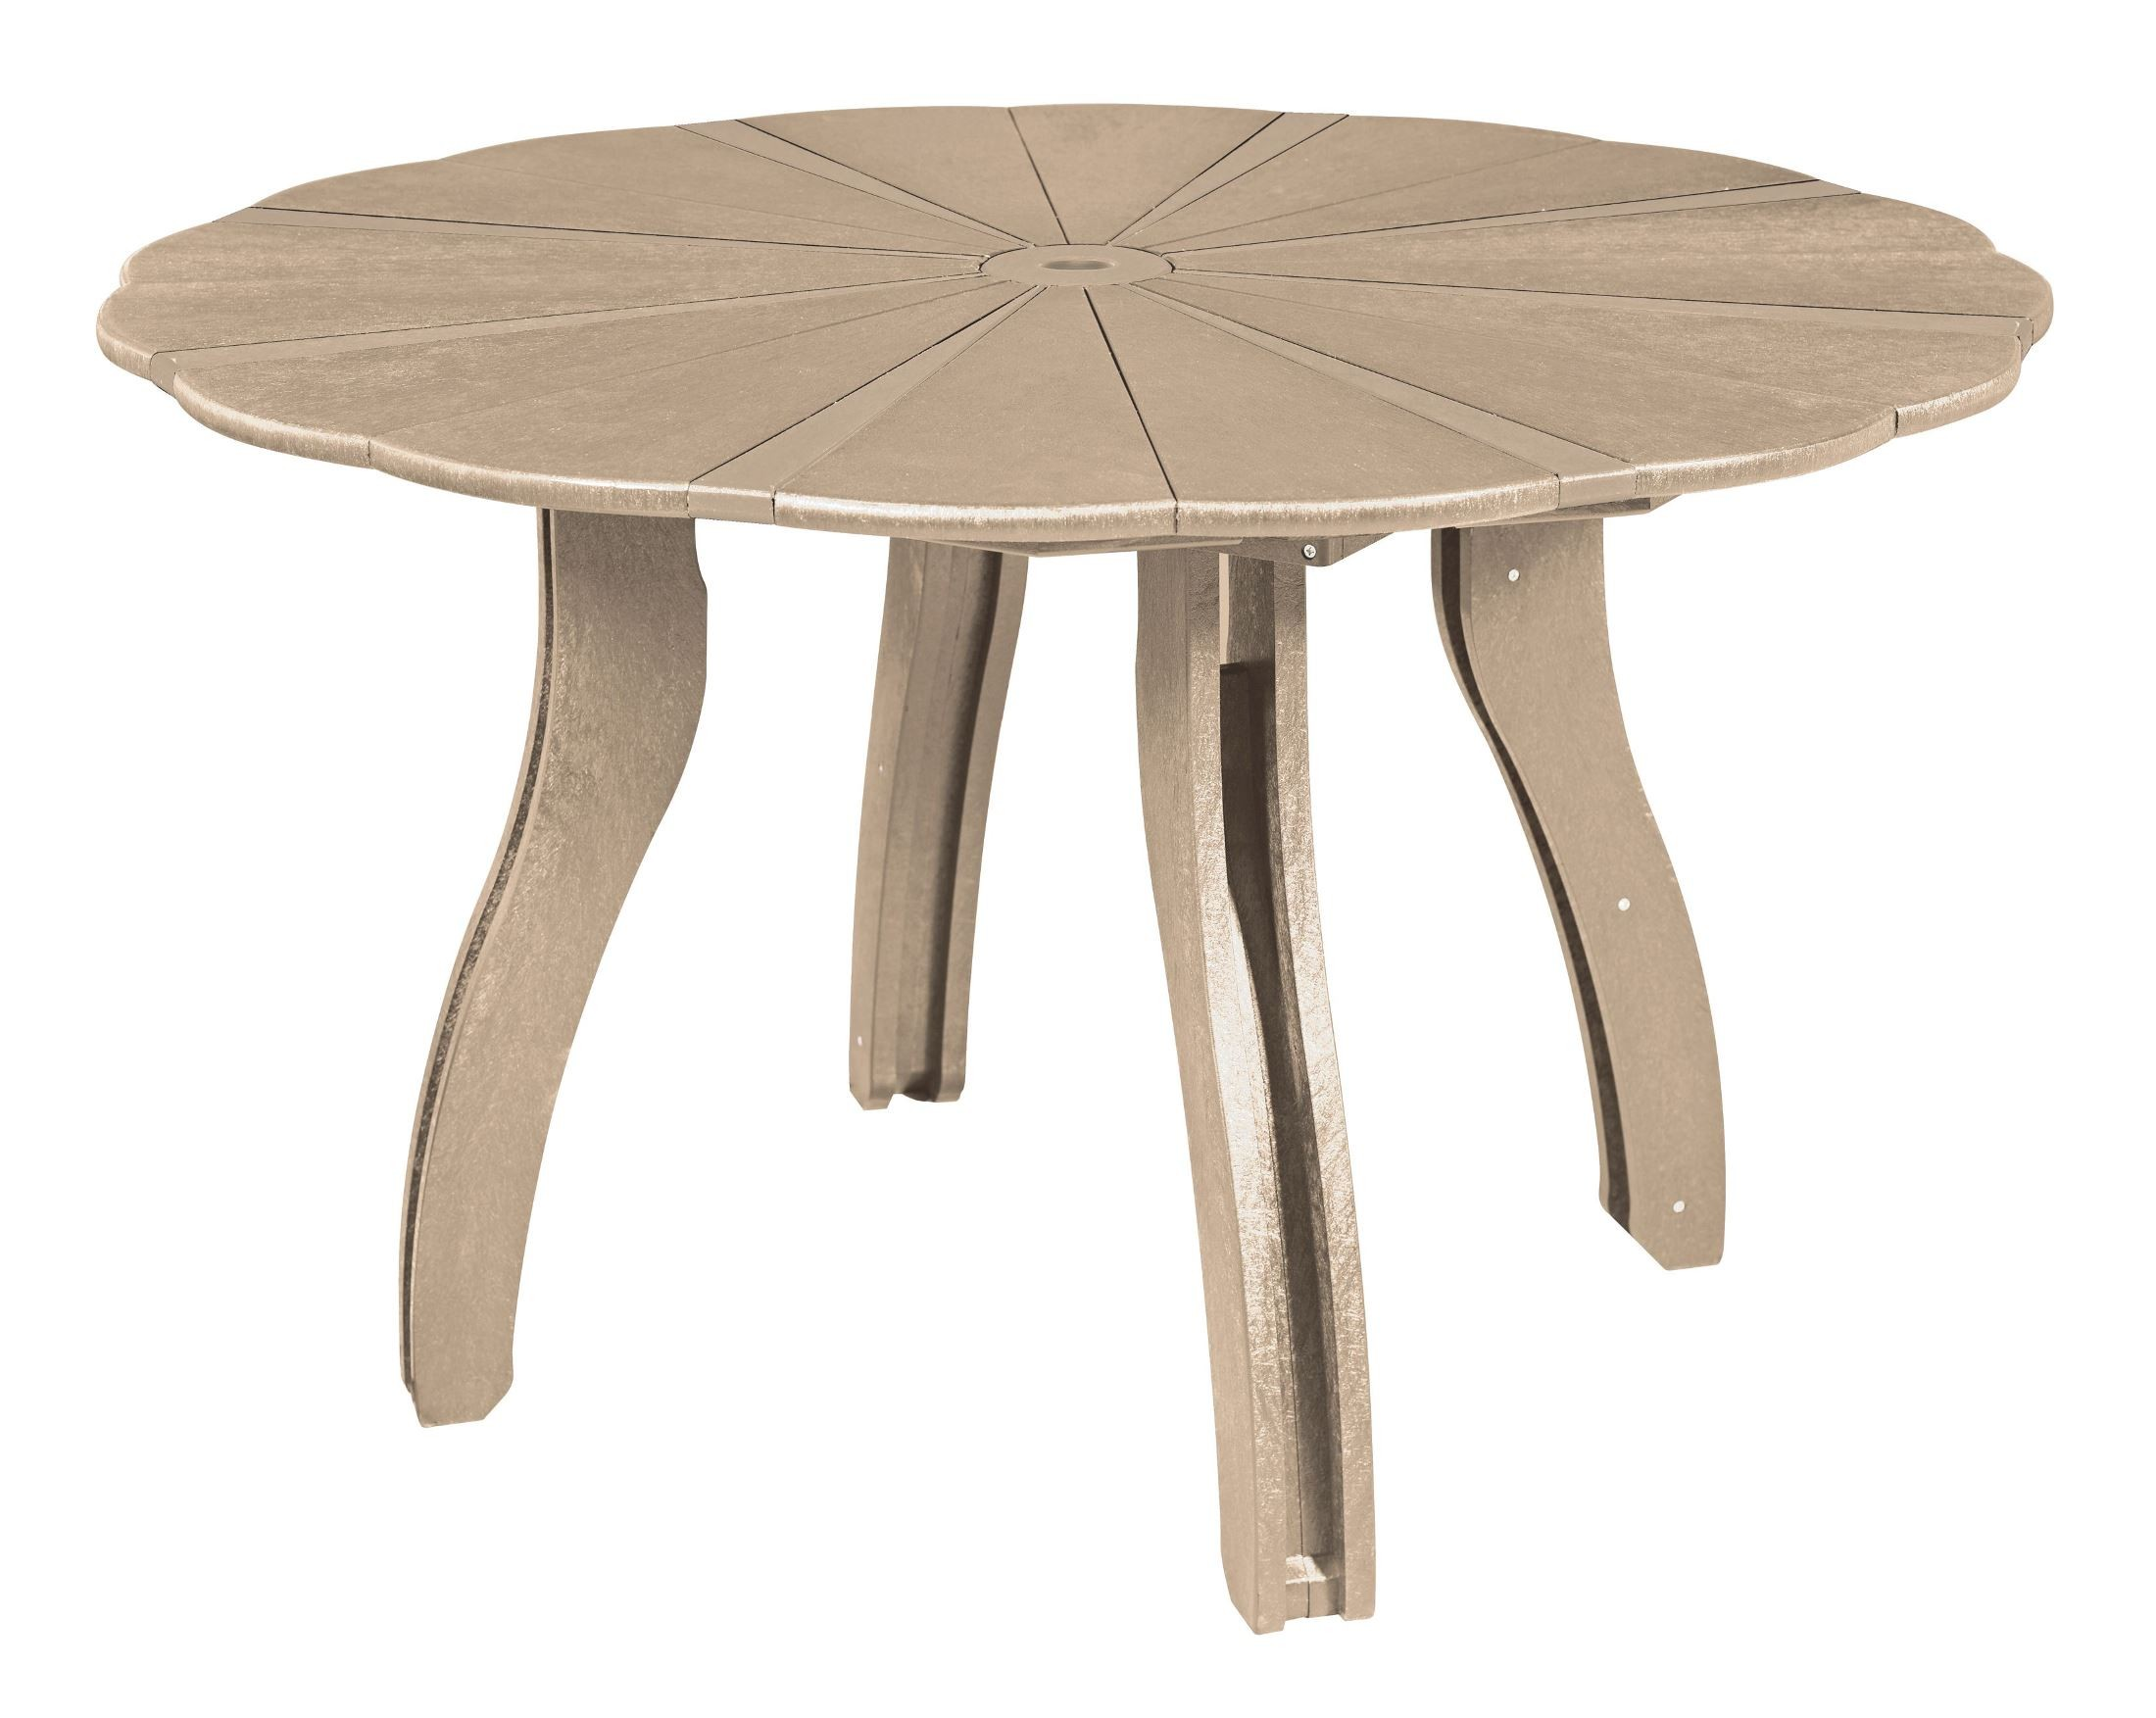 Generations beige 52 scalloped round dining table from cr for Round table 52 nordenham